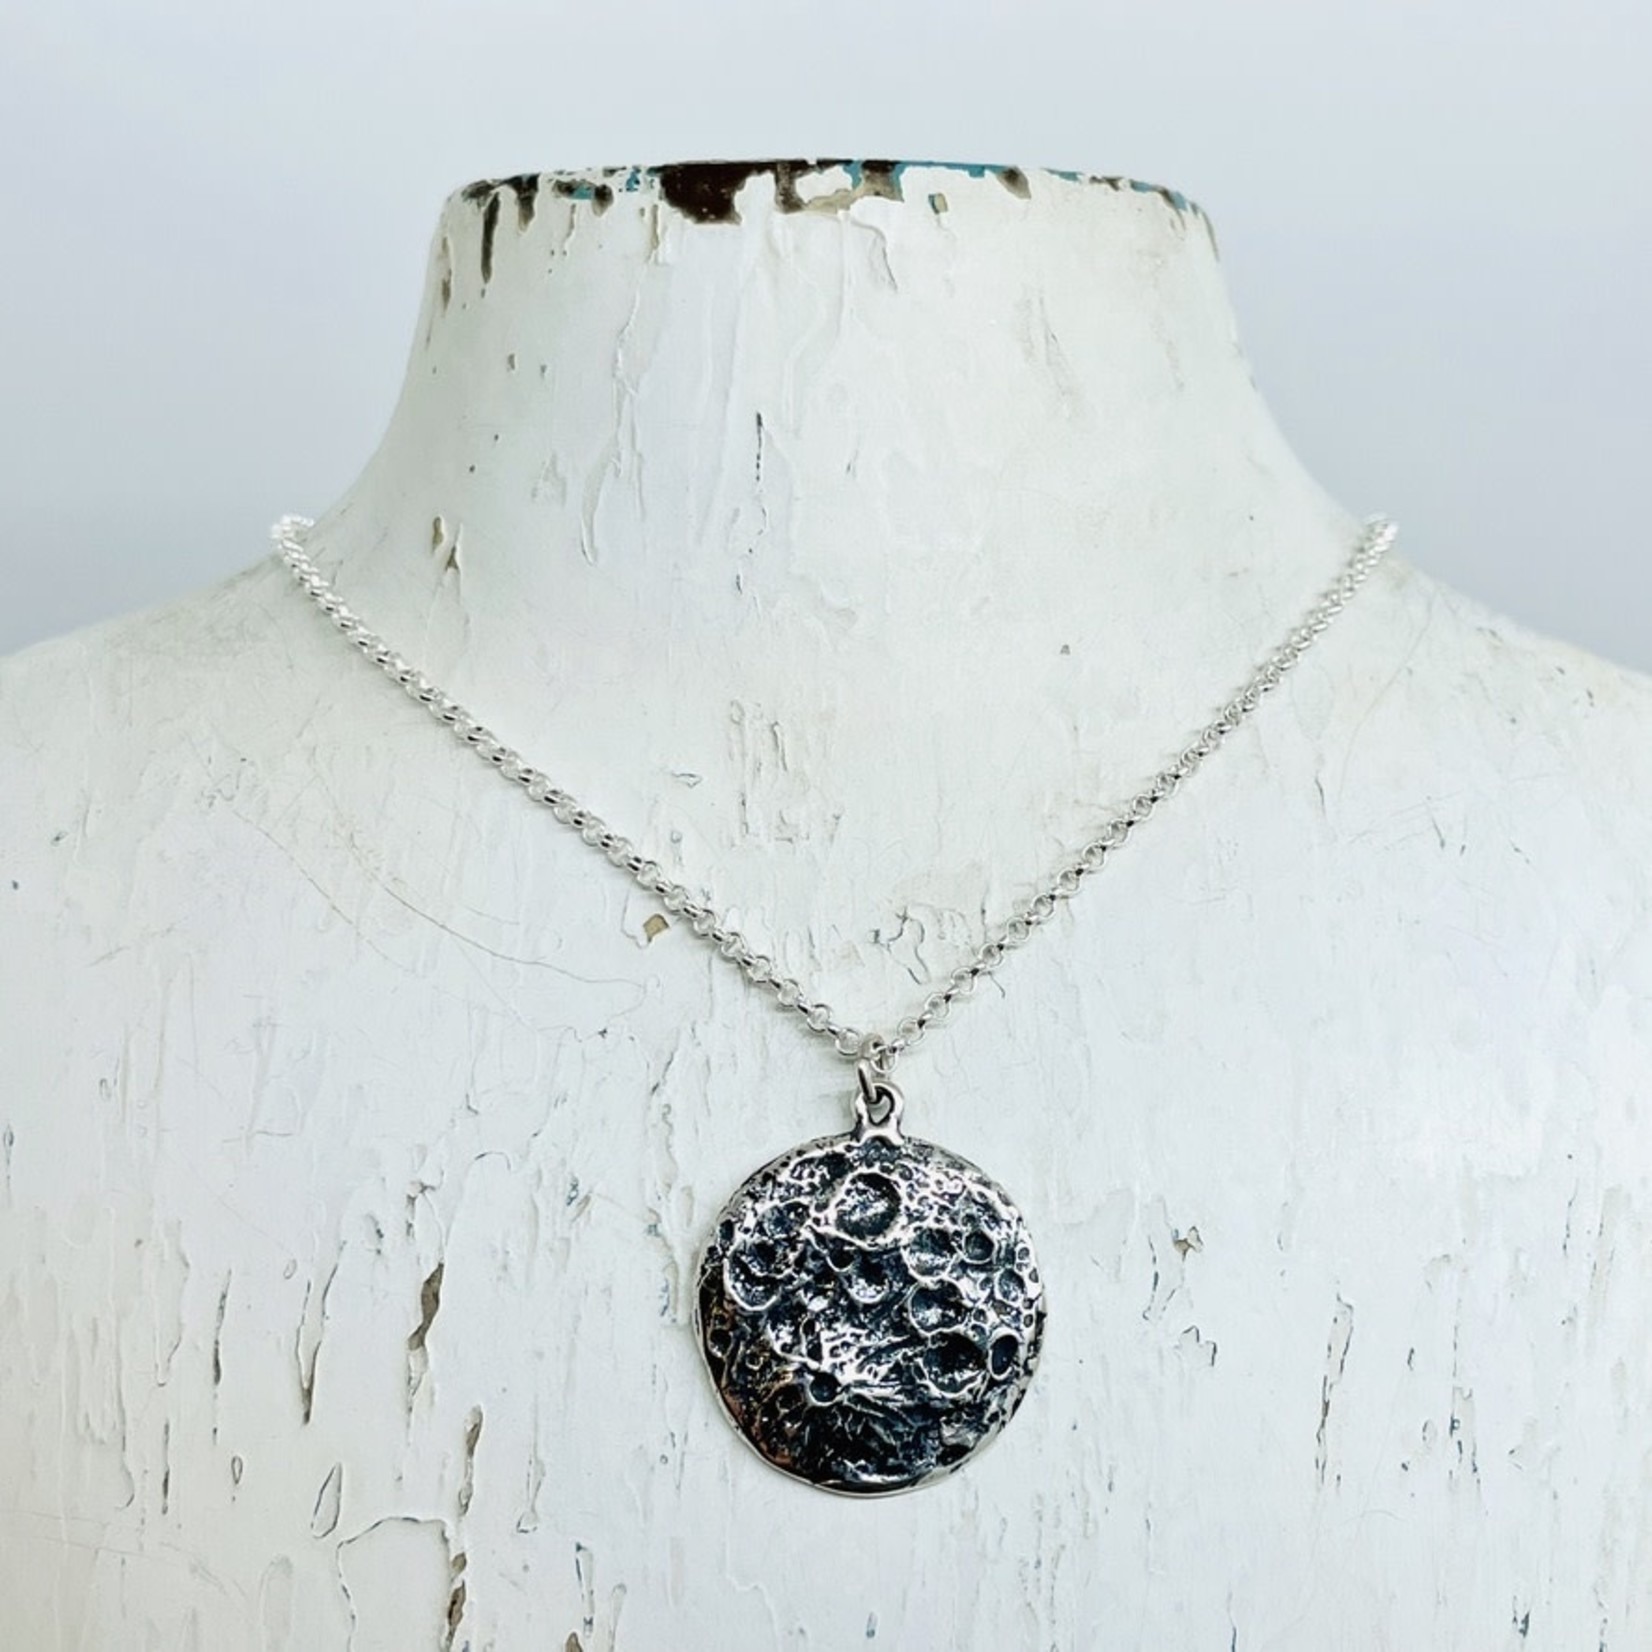 Silver Bramble Jewelry Handmade Moon Necklace in Silver